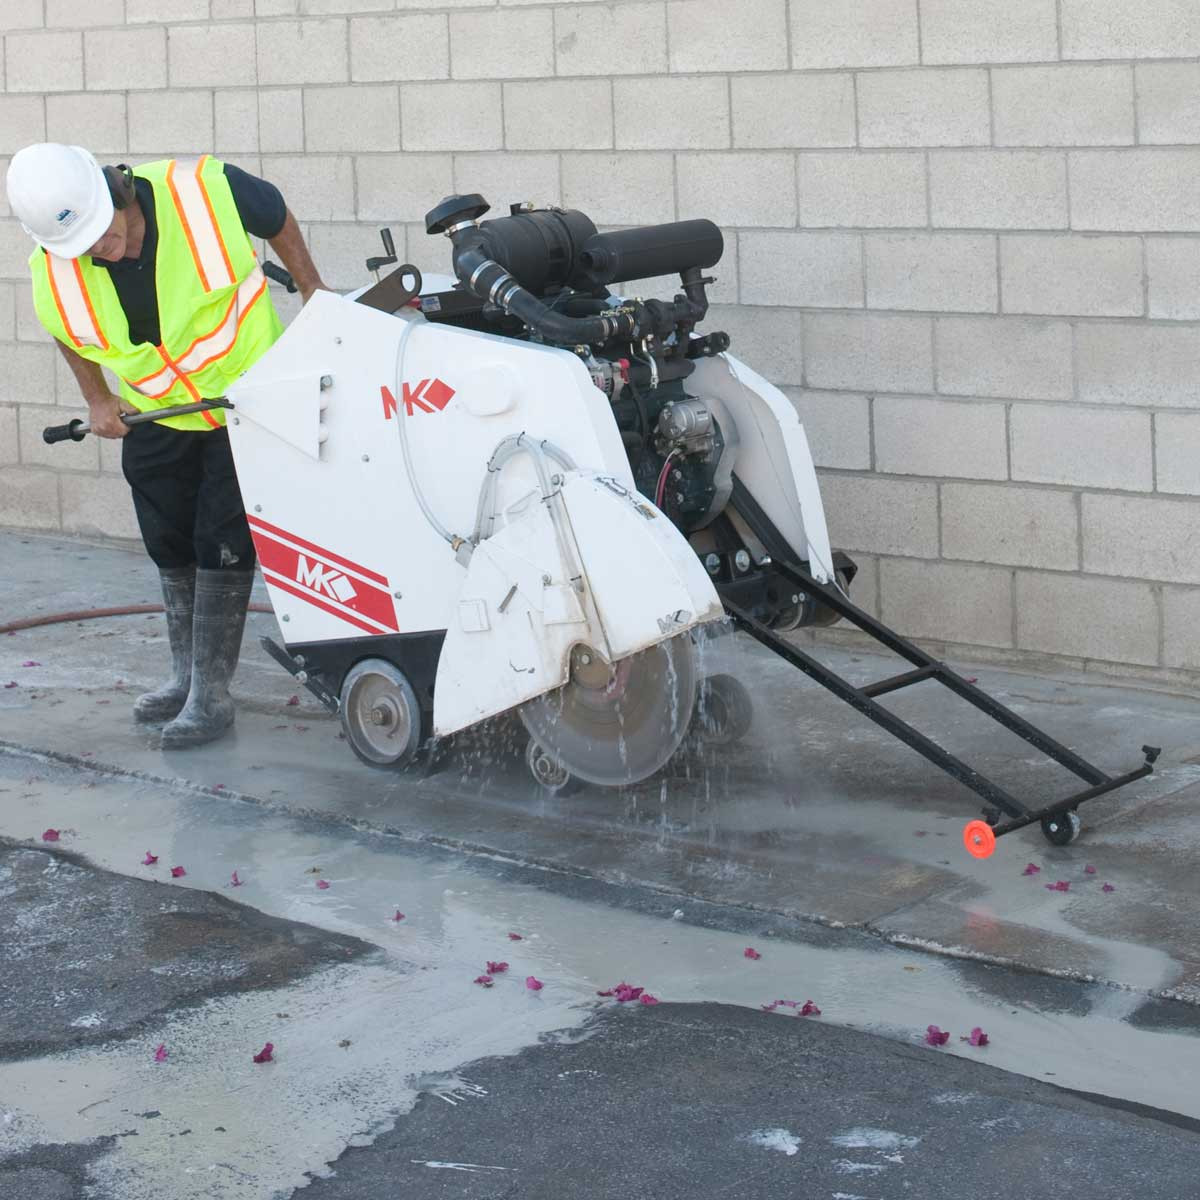 MK Self-Propelled Concrete Sawing